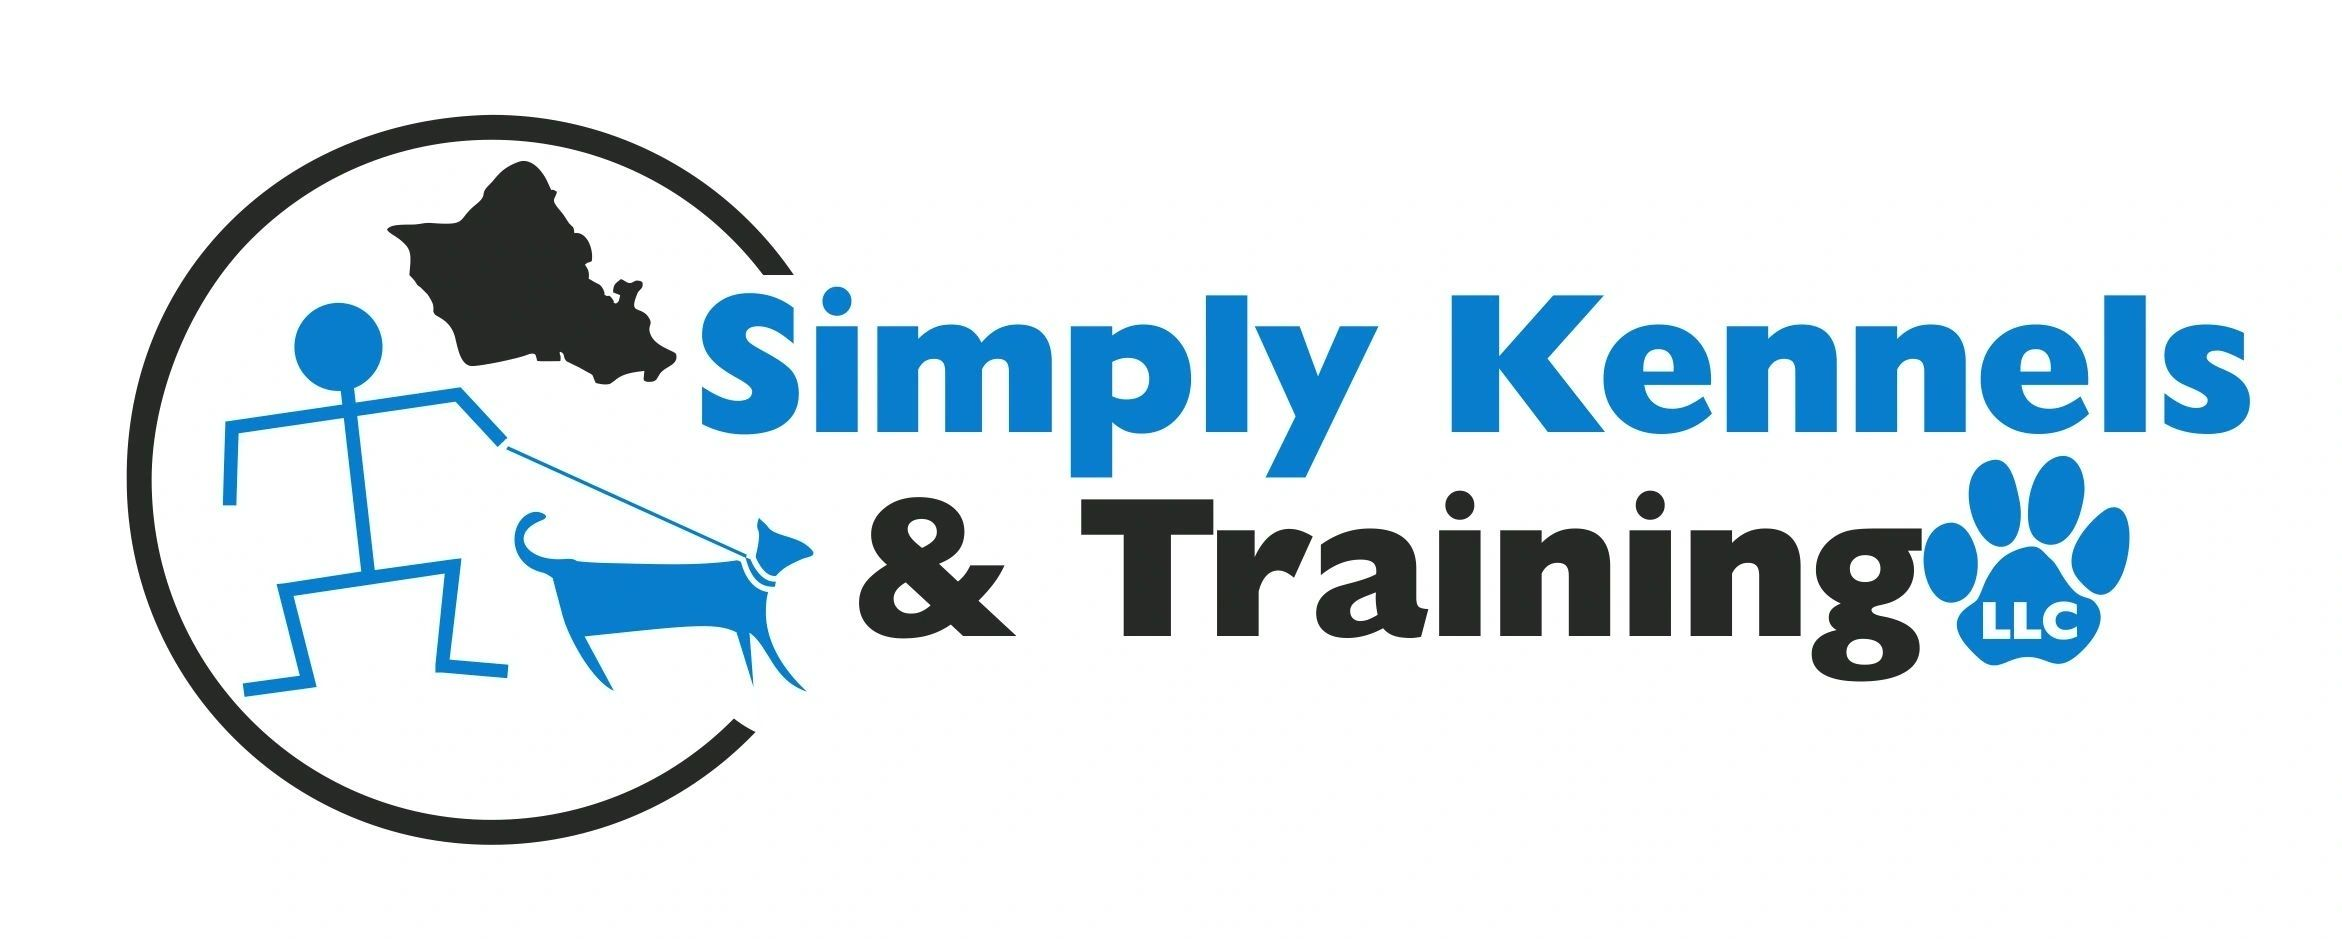 Simply Kennels & Traininng logo